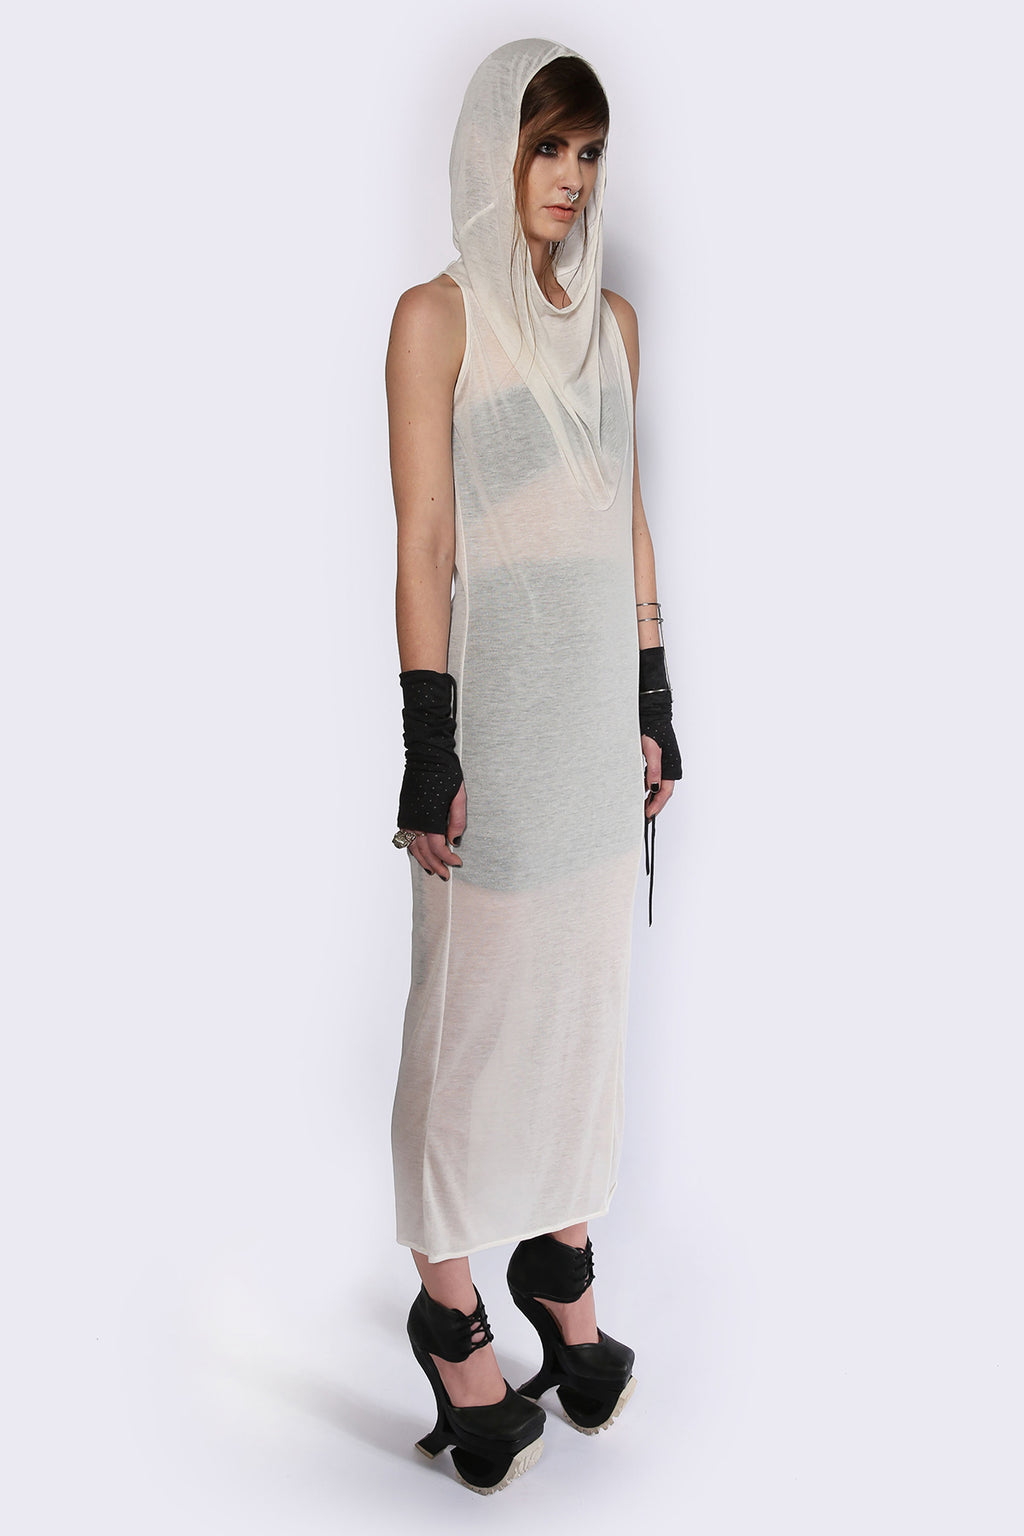 See-through Hooded Dress Dresses Ethical Sustainable Vegan Organic Australian fashion womens clothes